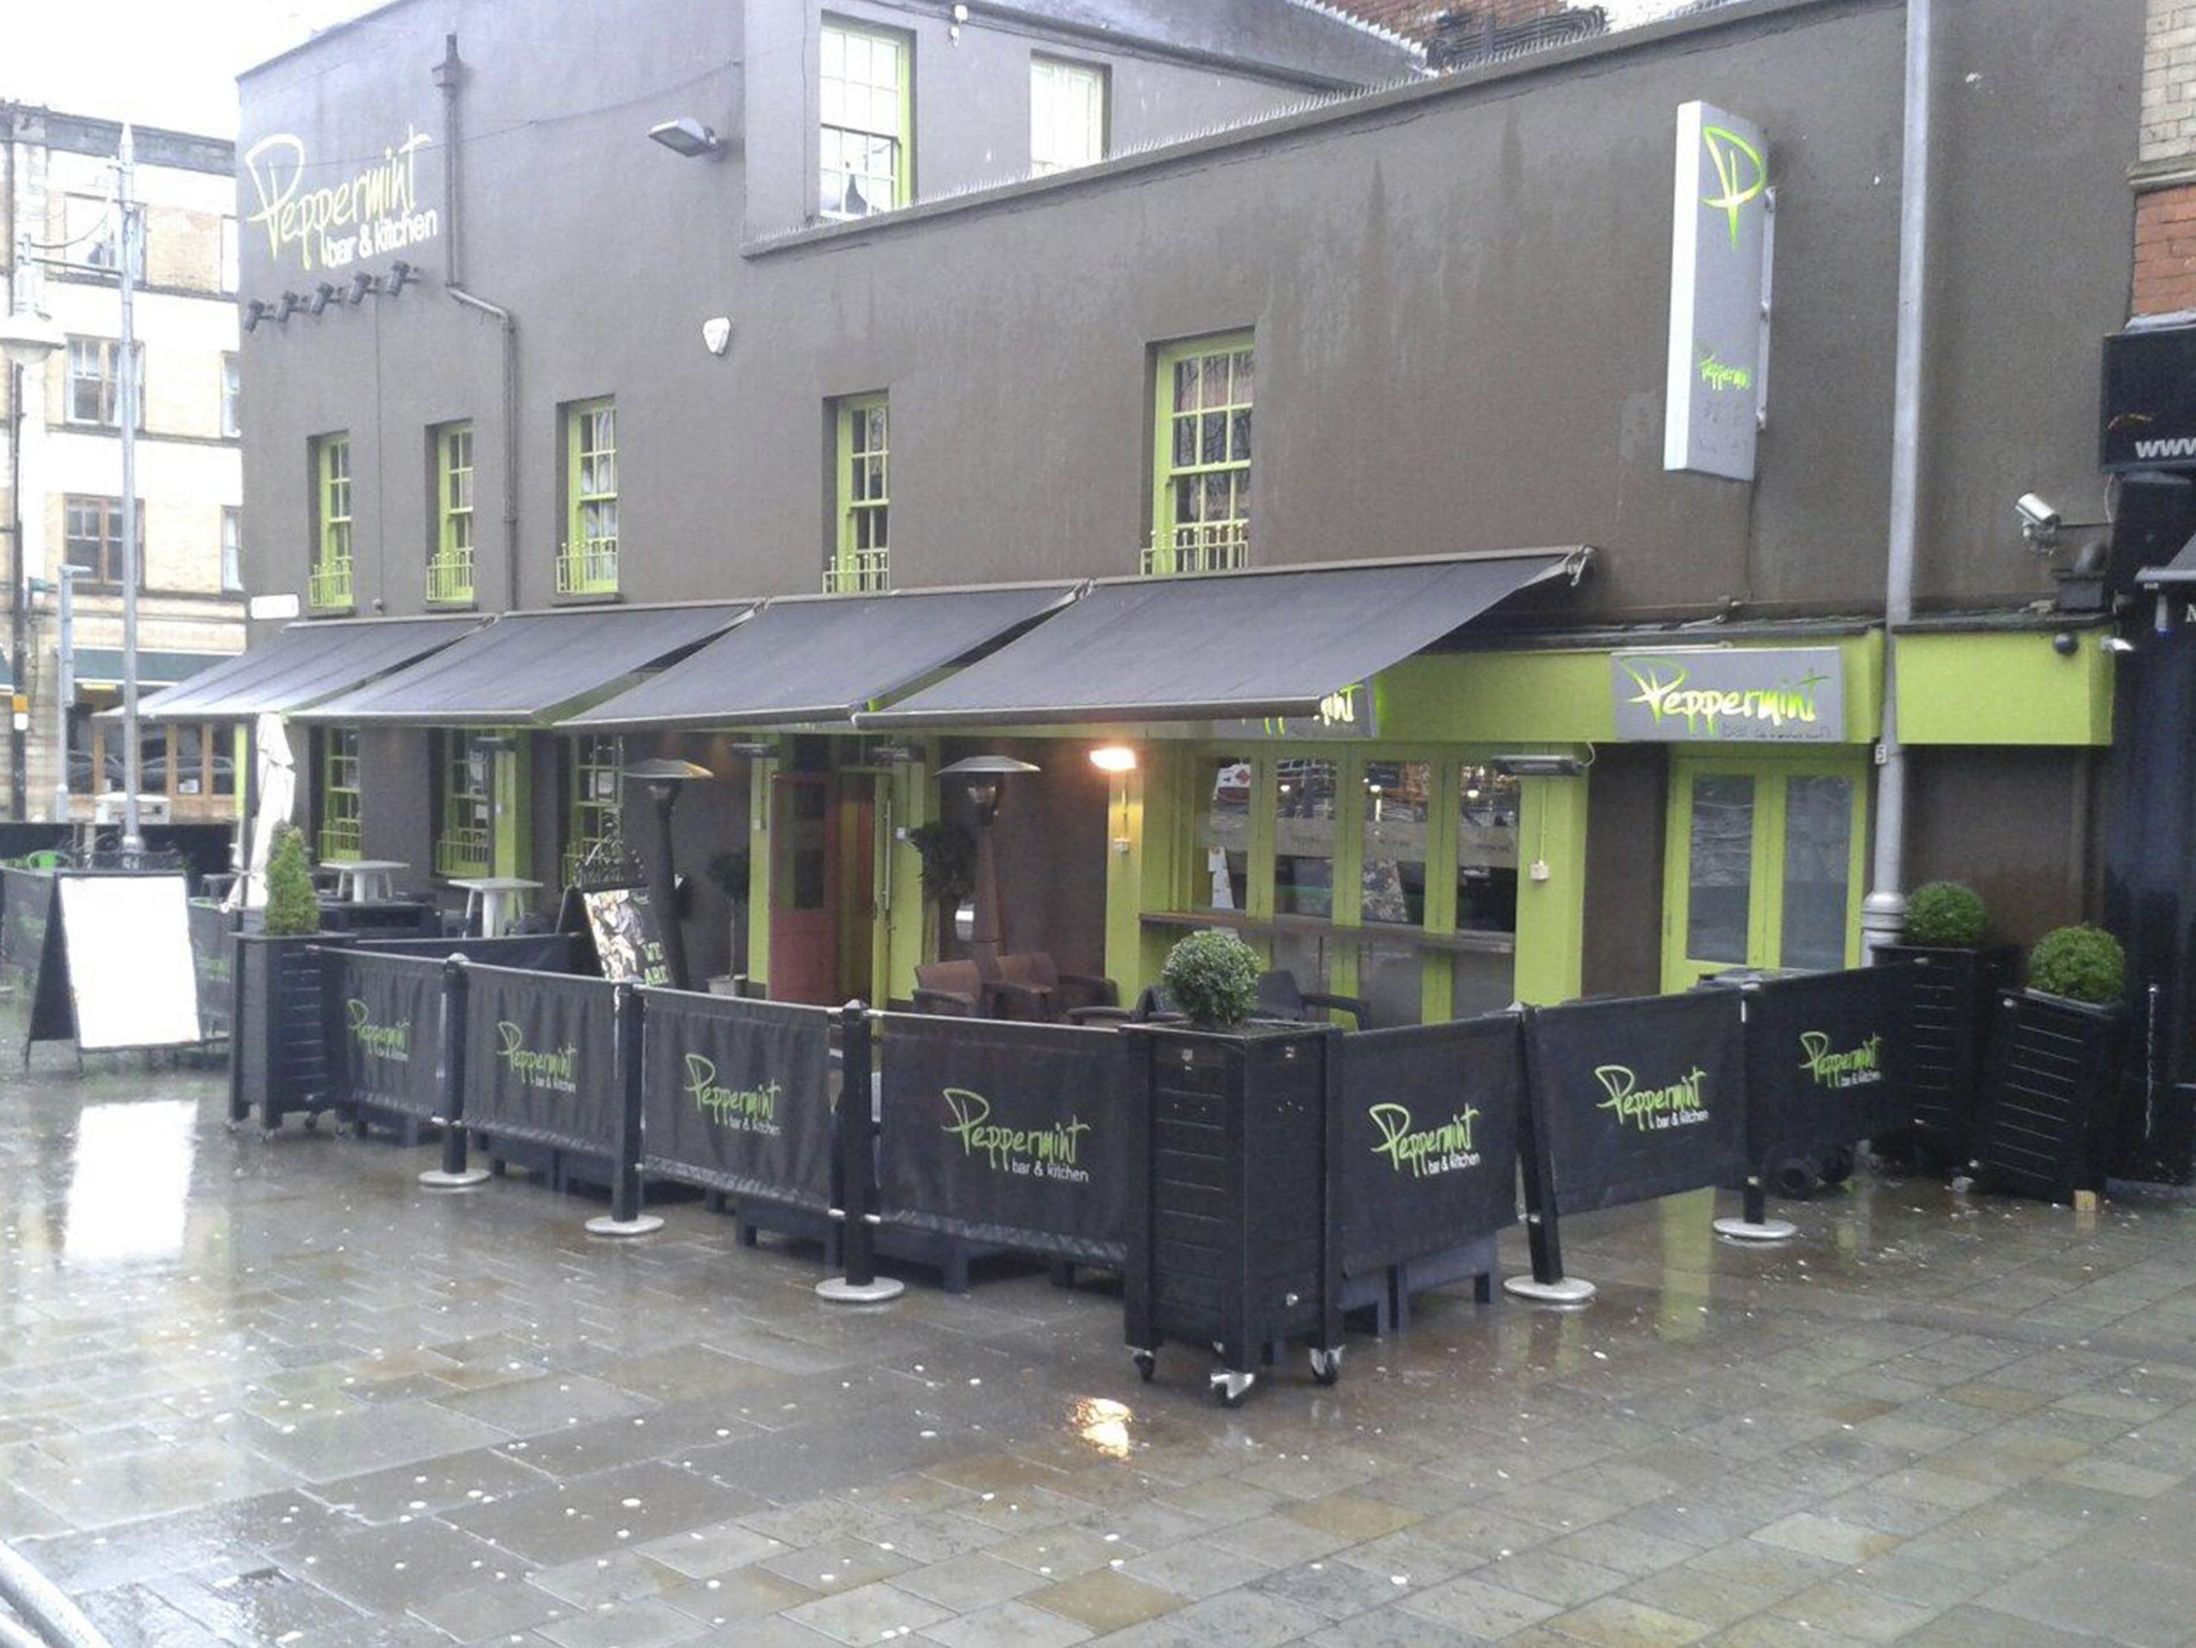 Cocktail Bars in Cardiff - Peppermint Bar